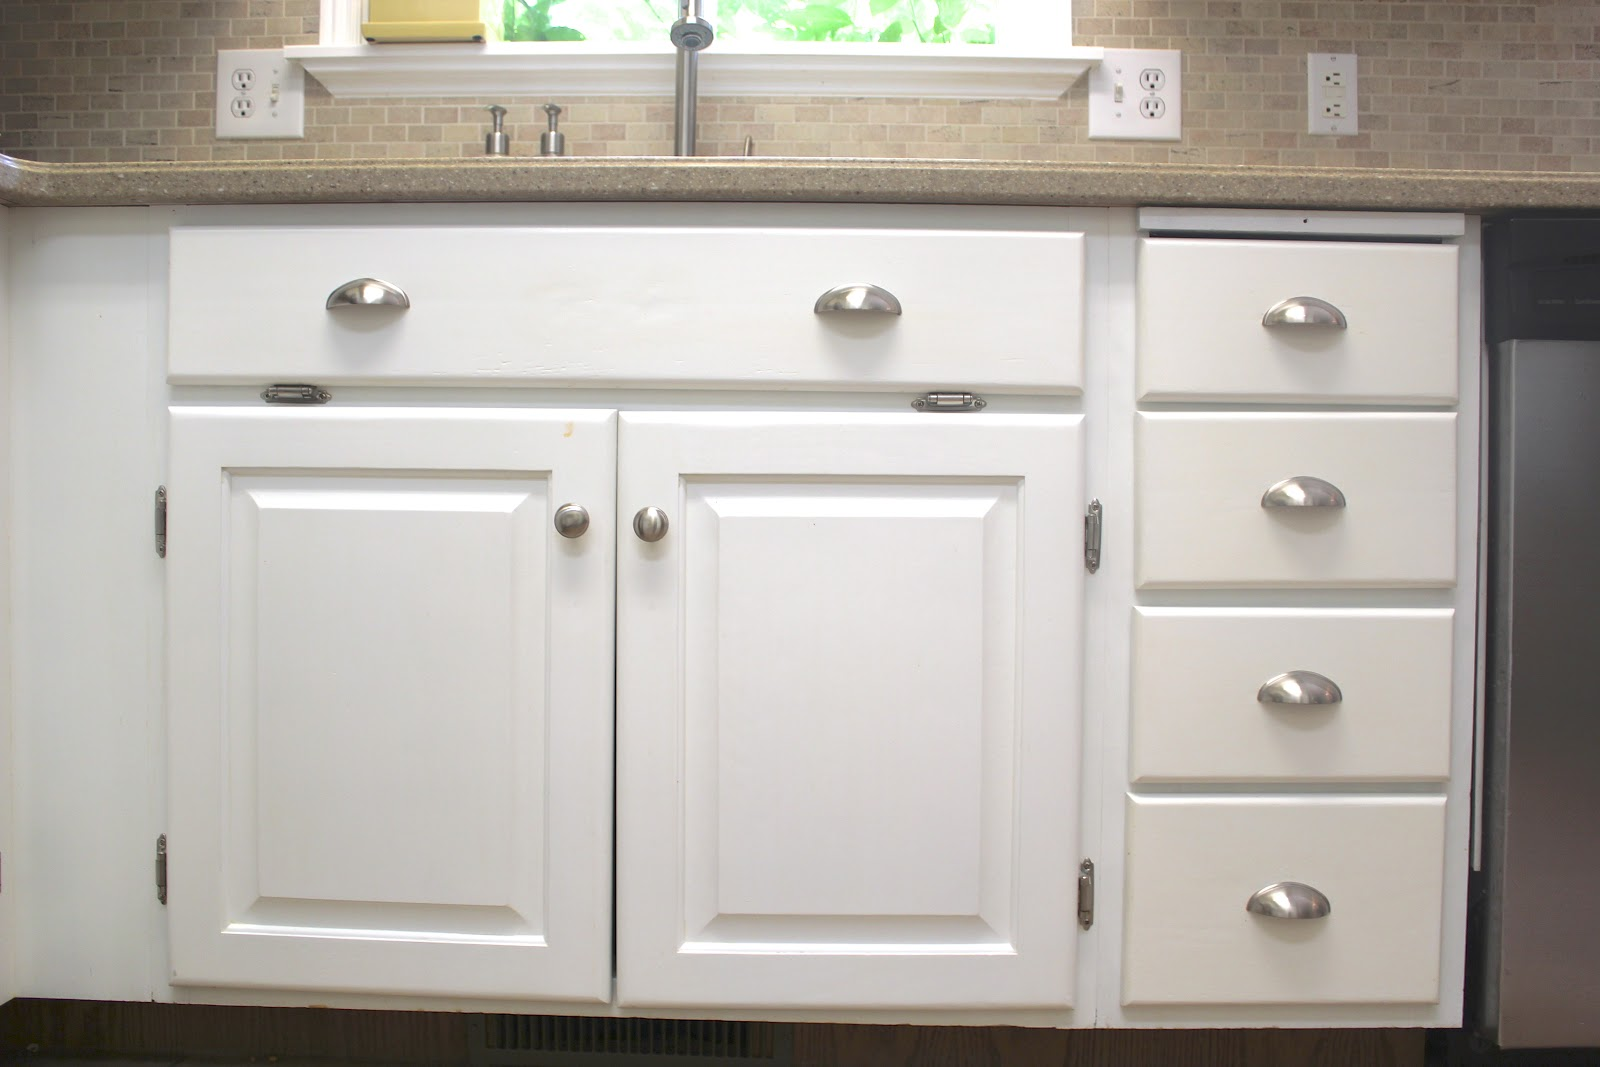 changing hinges on kitchen cabinets wrought iron table everywhere beautiful remodel big results a